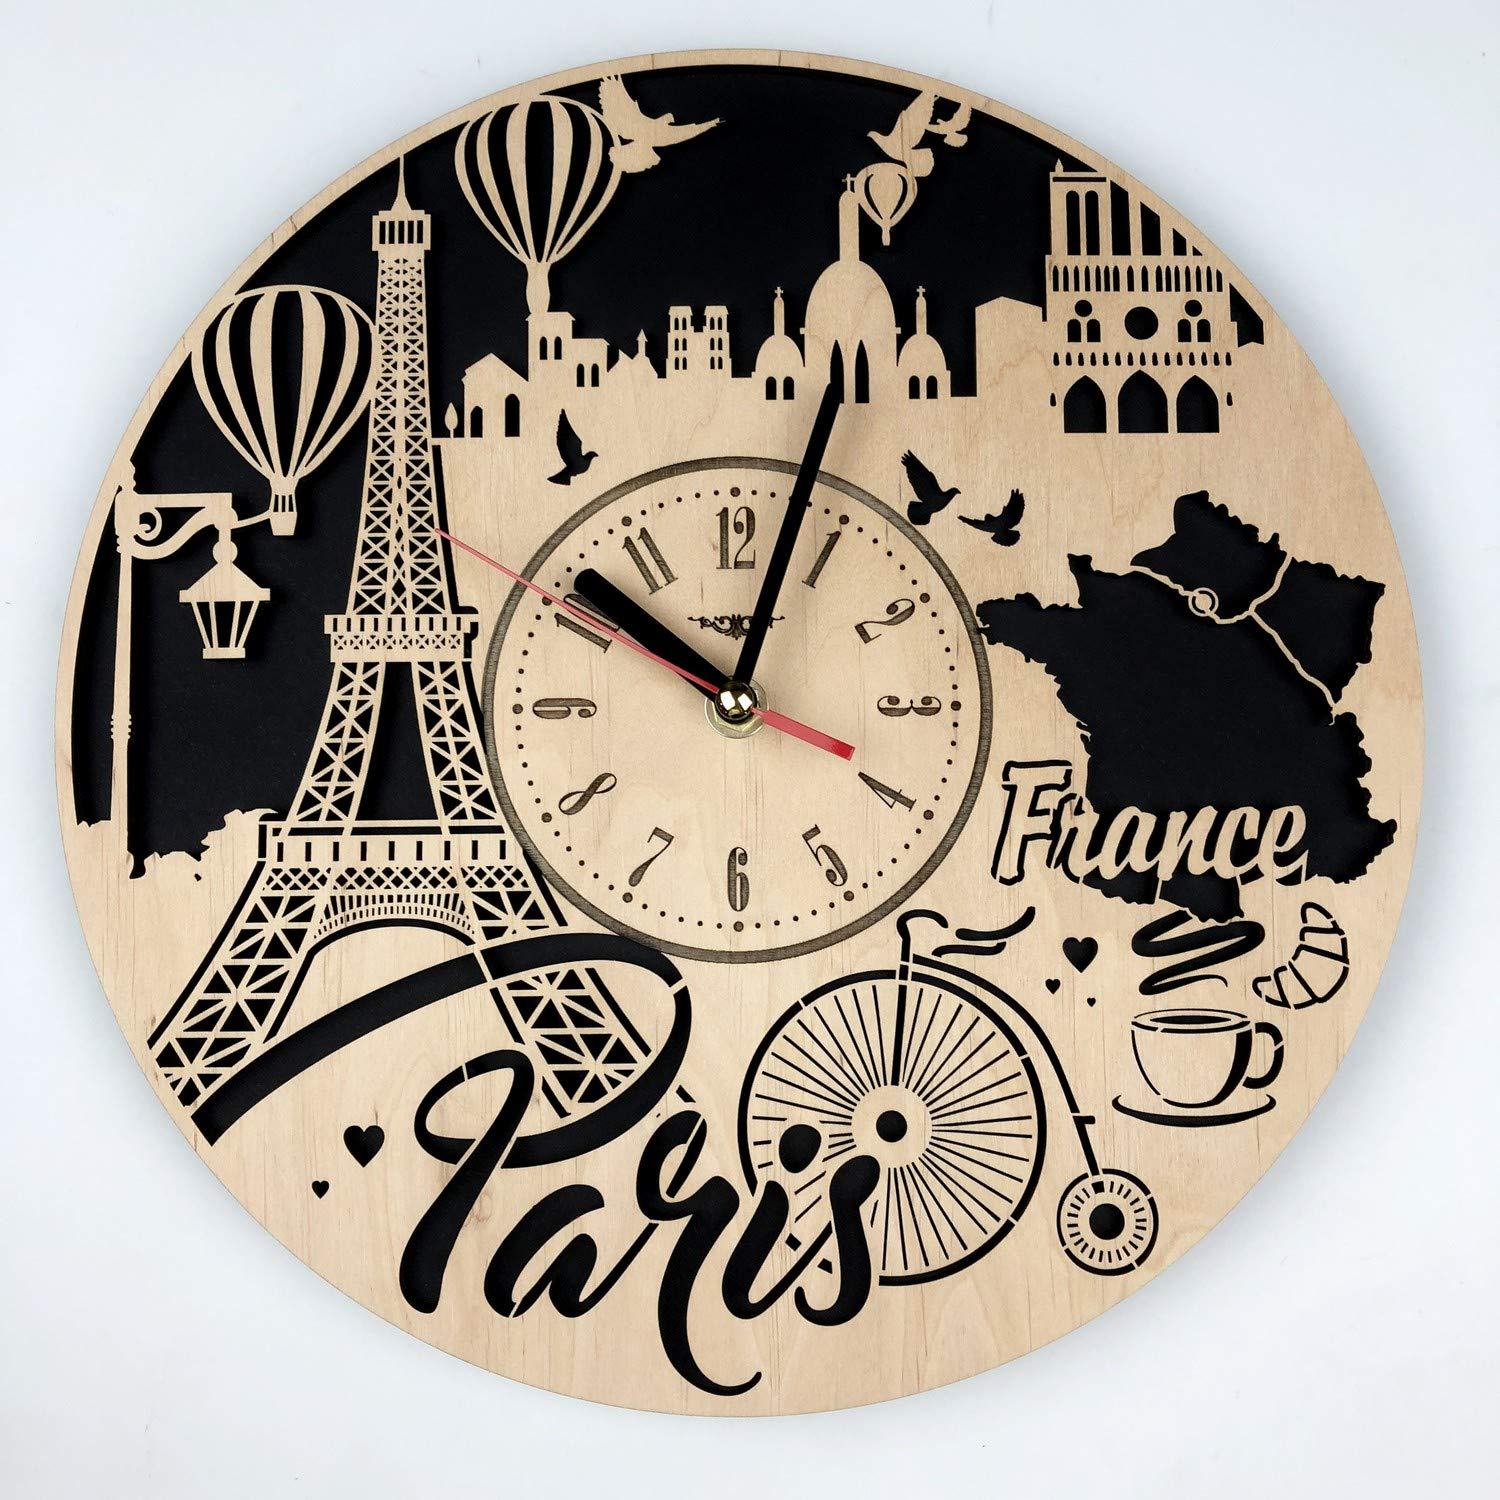 France Paris Skyline Wall Clock Made of Eco Friendly Wood - Unique Gifts Ideas and Home Decor - Great Wall Art for Living Room Kitchen Bedroom - Silent ...